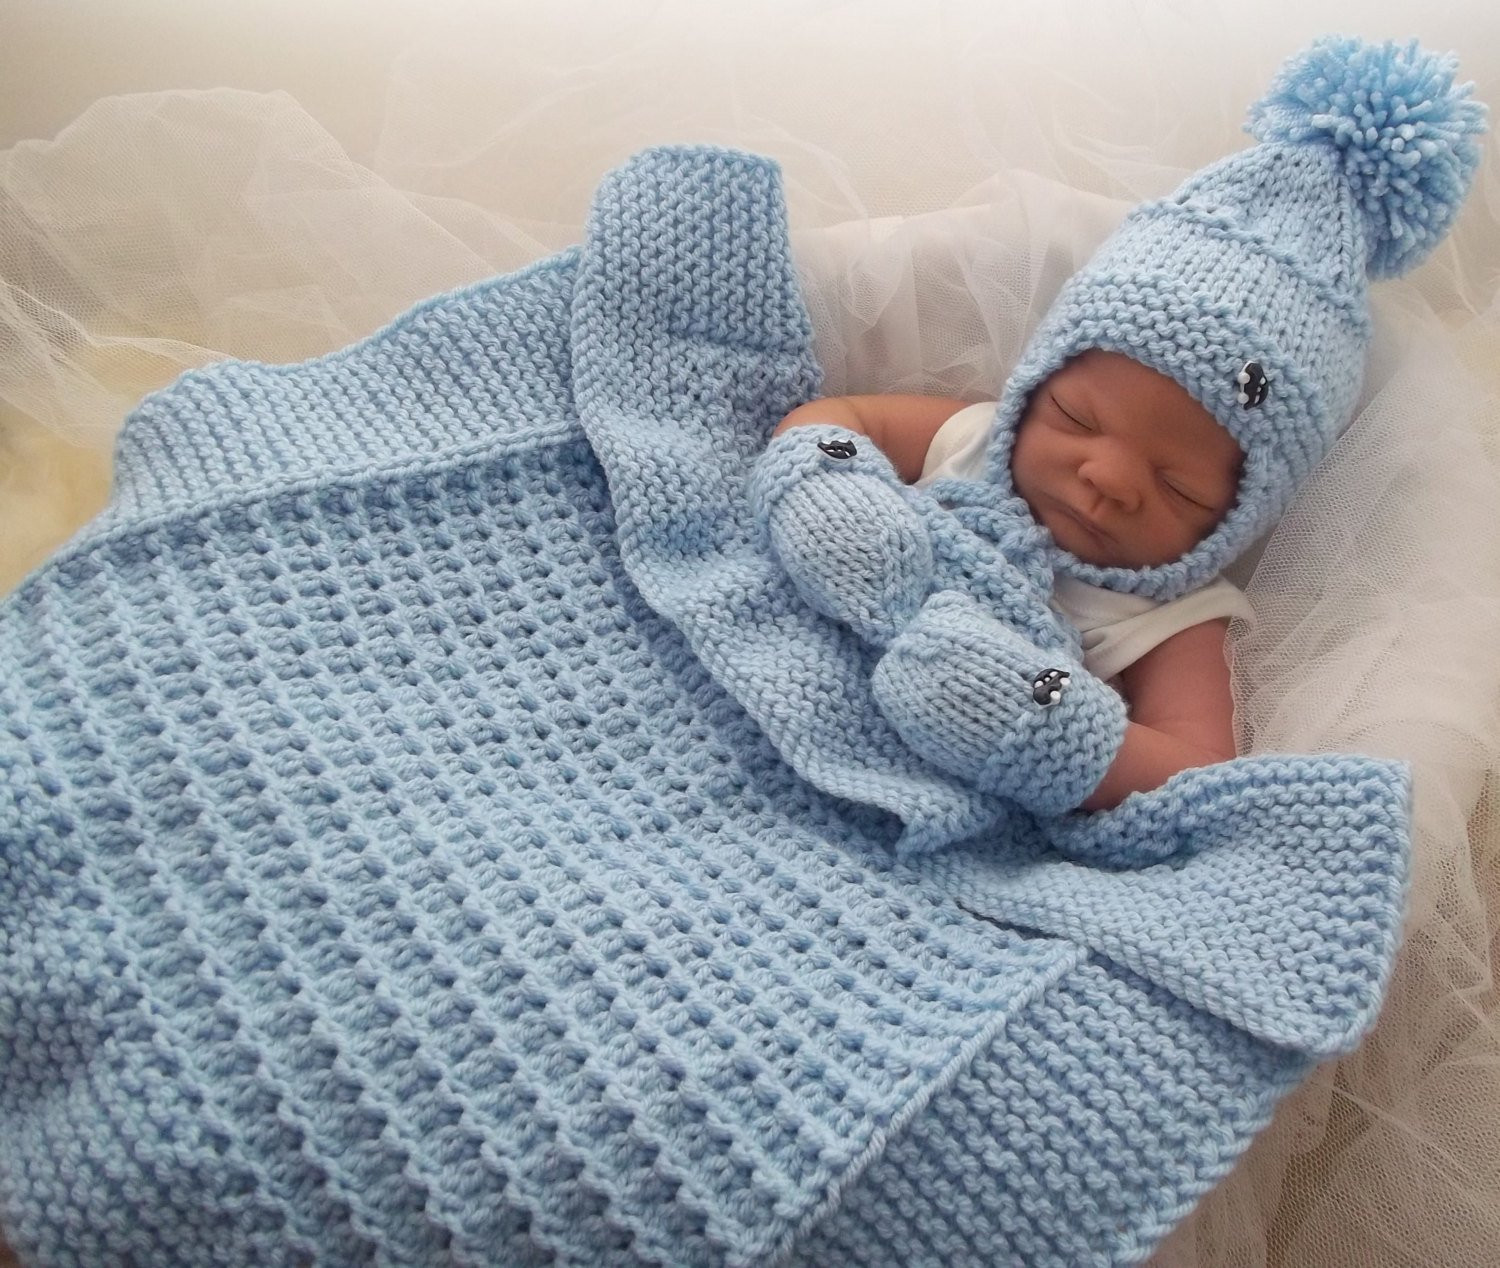 Baby Boy Knitted Blanket Beautiful Baby Knitting Pattern Chunky Baby Pram Blanket Hat & Mittens Of Incredible 43 Photos Baby Boy Knitted Blanket